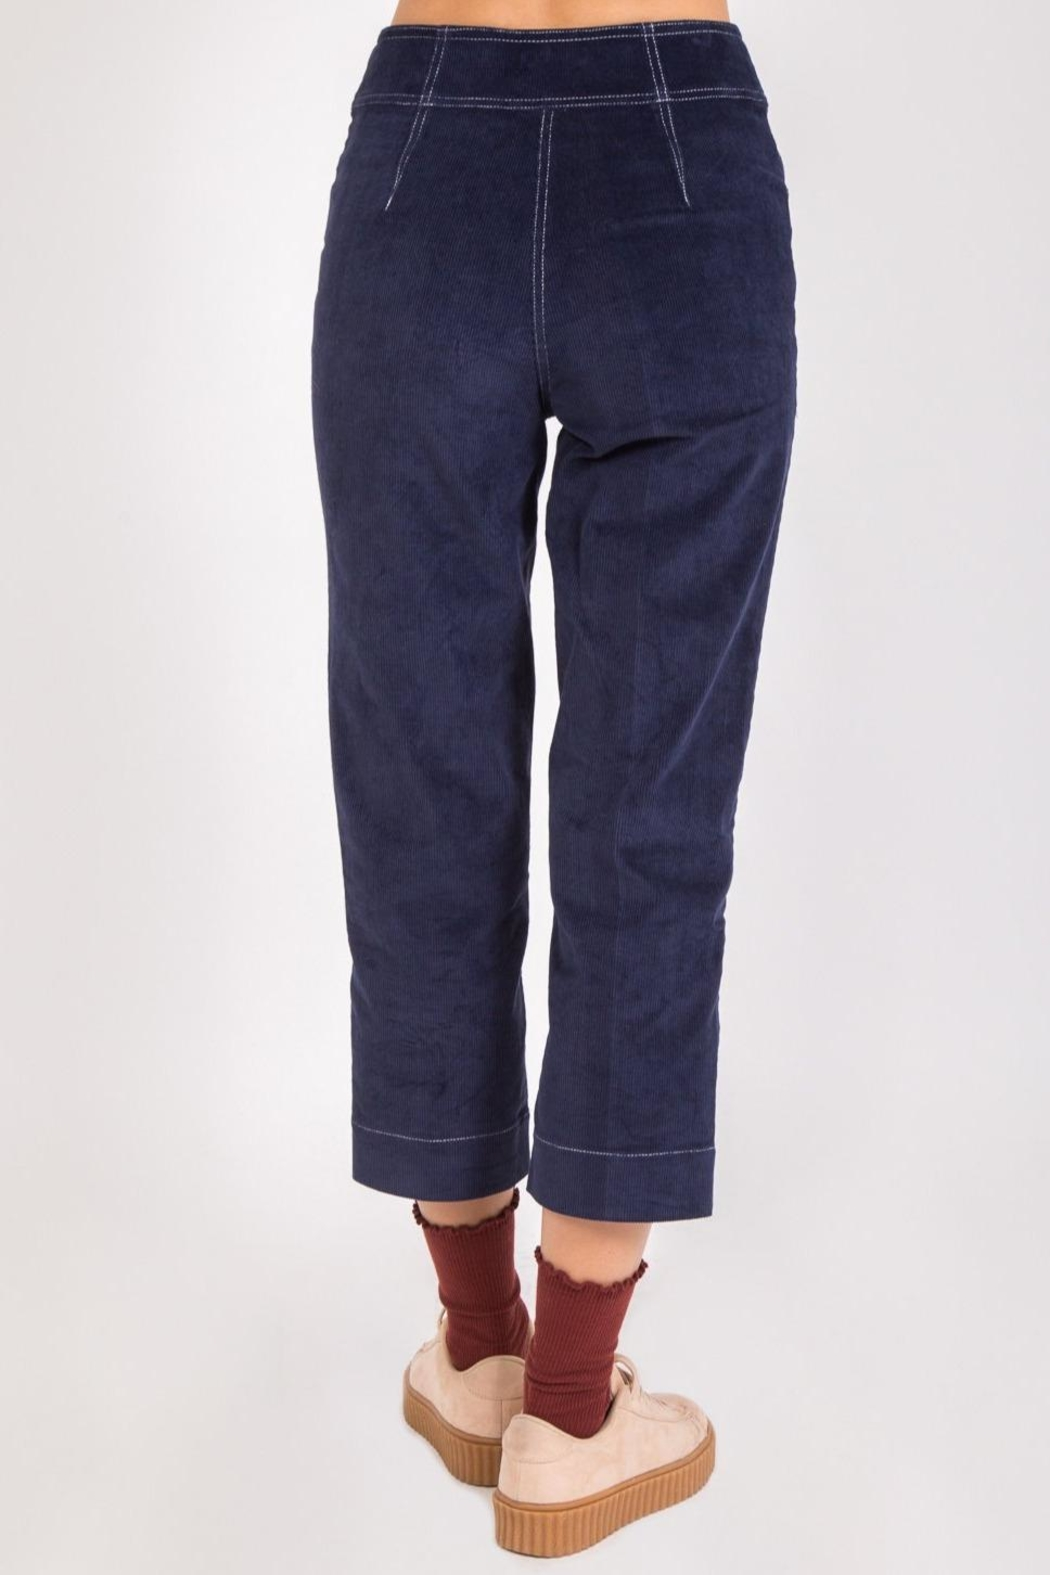 Movint Remy Corduroy Trousers - Side Cropped Image